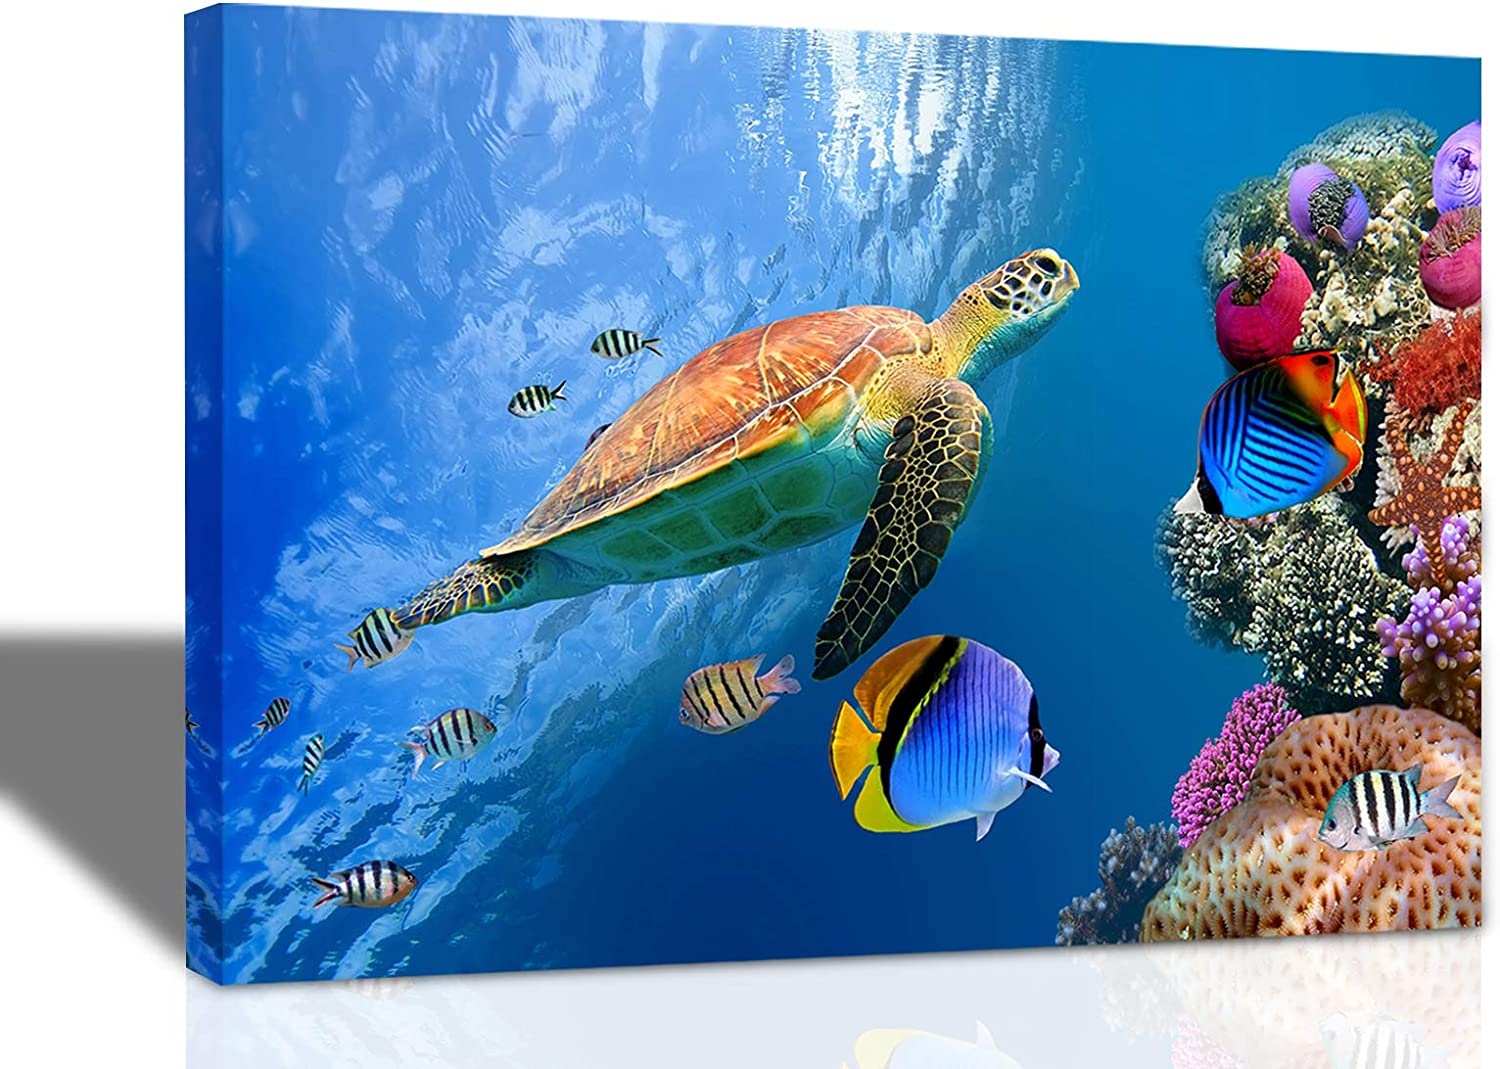 Sea Turtle Wall Art Bathroom Decor Canvas Prints Modern Blue Ocean Colorful Fish Coral Pictures for Bedroom Living Room Baby Room Wall Decor Size 12x16 Inch Ready to Hang